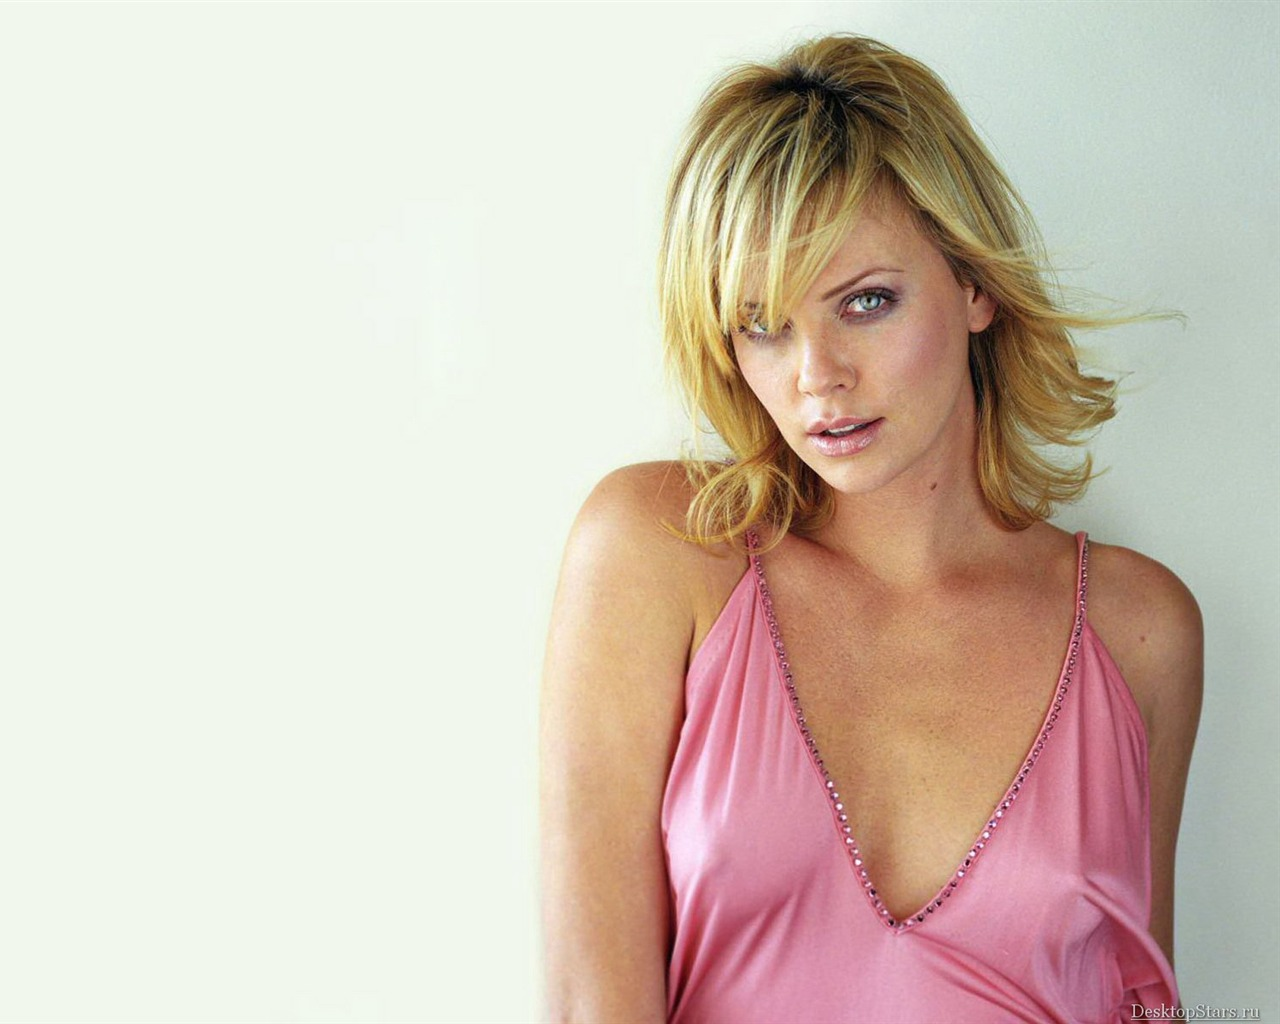 Charlize Theron #063 - 1280x1024 Wallpapers Pictures Photos Images